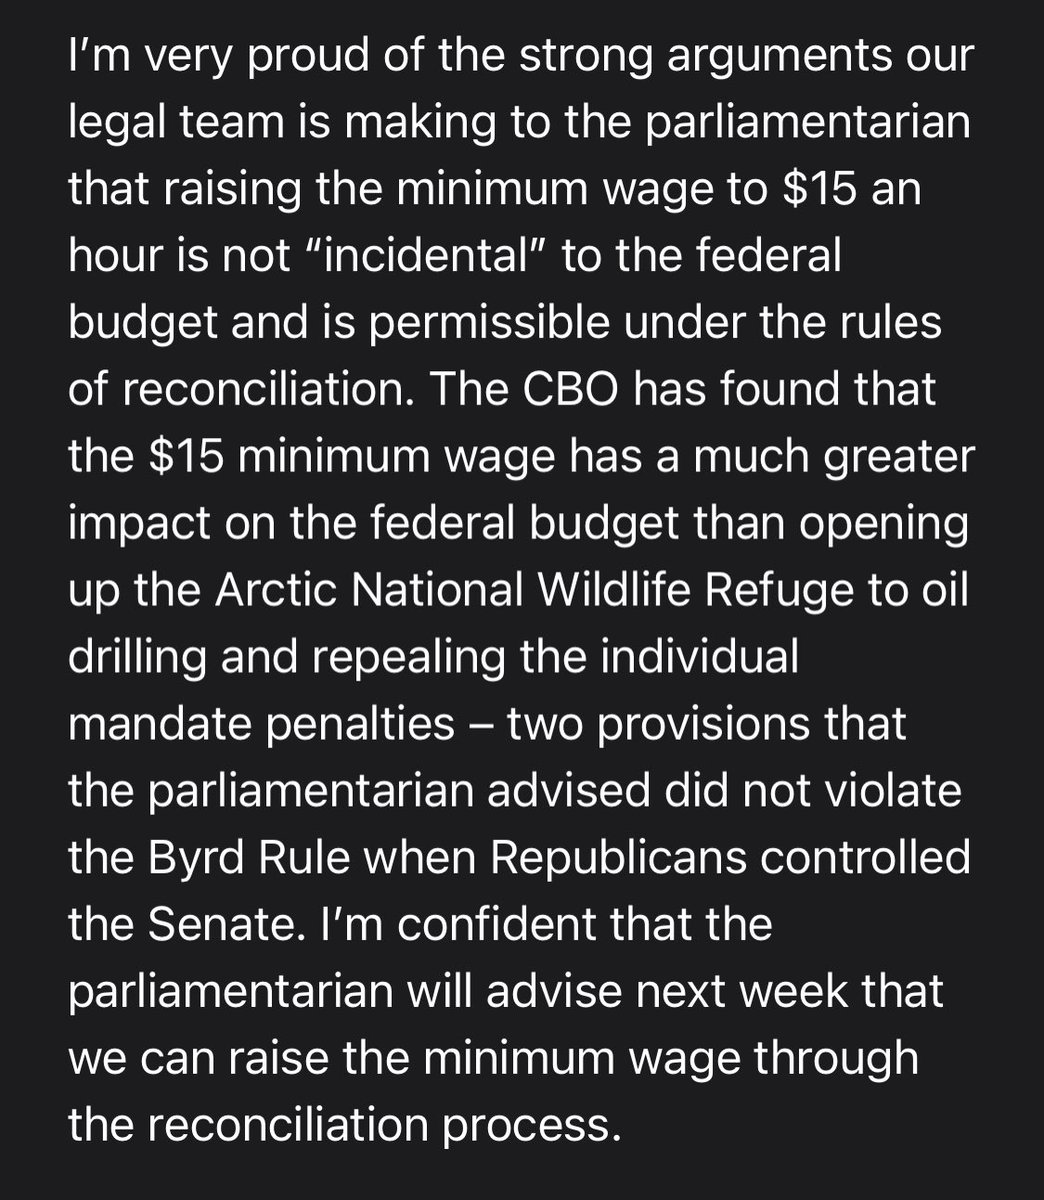 """NEW: After a week of negotiations w/ the Senate Parliamentarian- Sen. @BernieSanders tells CNN:  """"I'm confident that the parliamentarian will advise next week that we can raise the minimum wage through the reconciliation process."""" FULL STATEMENT:"""